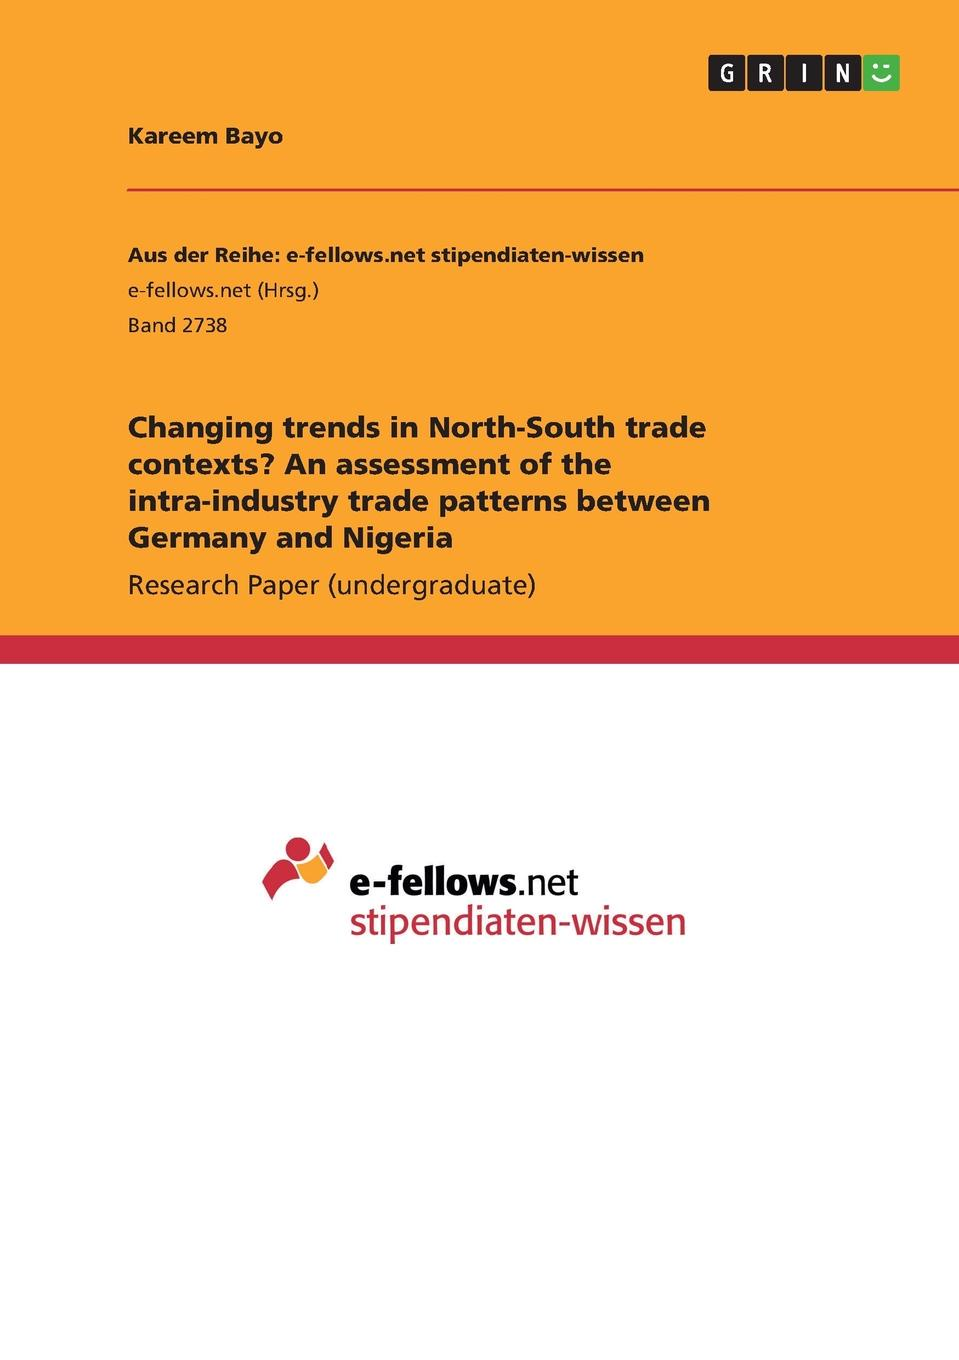 Kareem Bayo Changing trends in North-South trade contexts. An assessment of the intra-industry trade patterns between Germany and Nigeria недорго, оригинальная цена